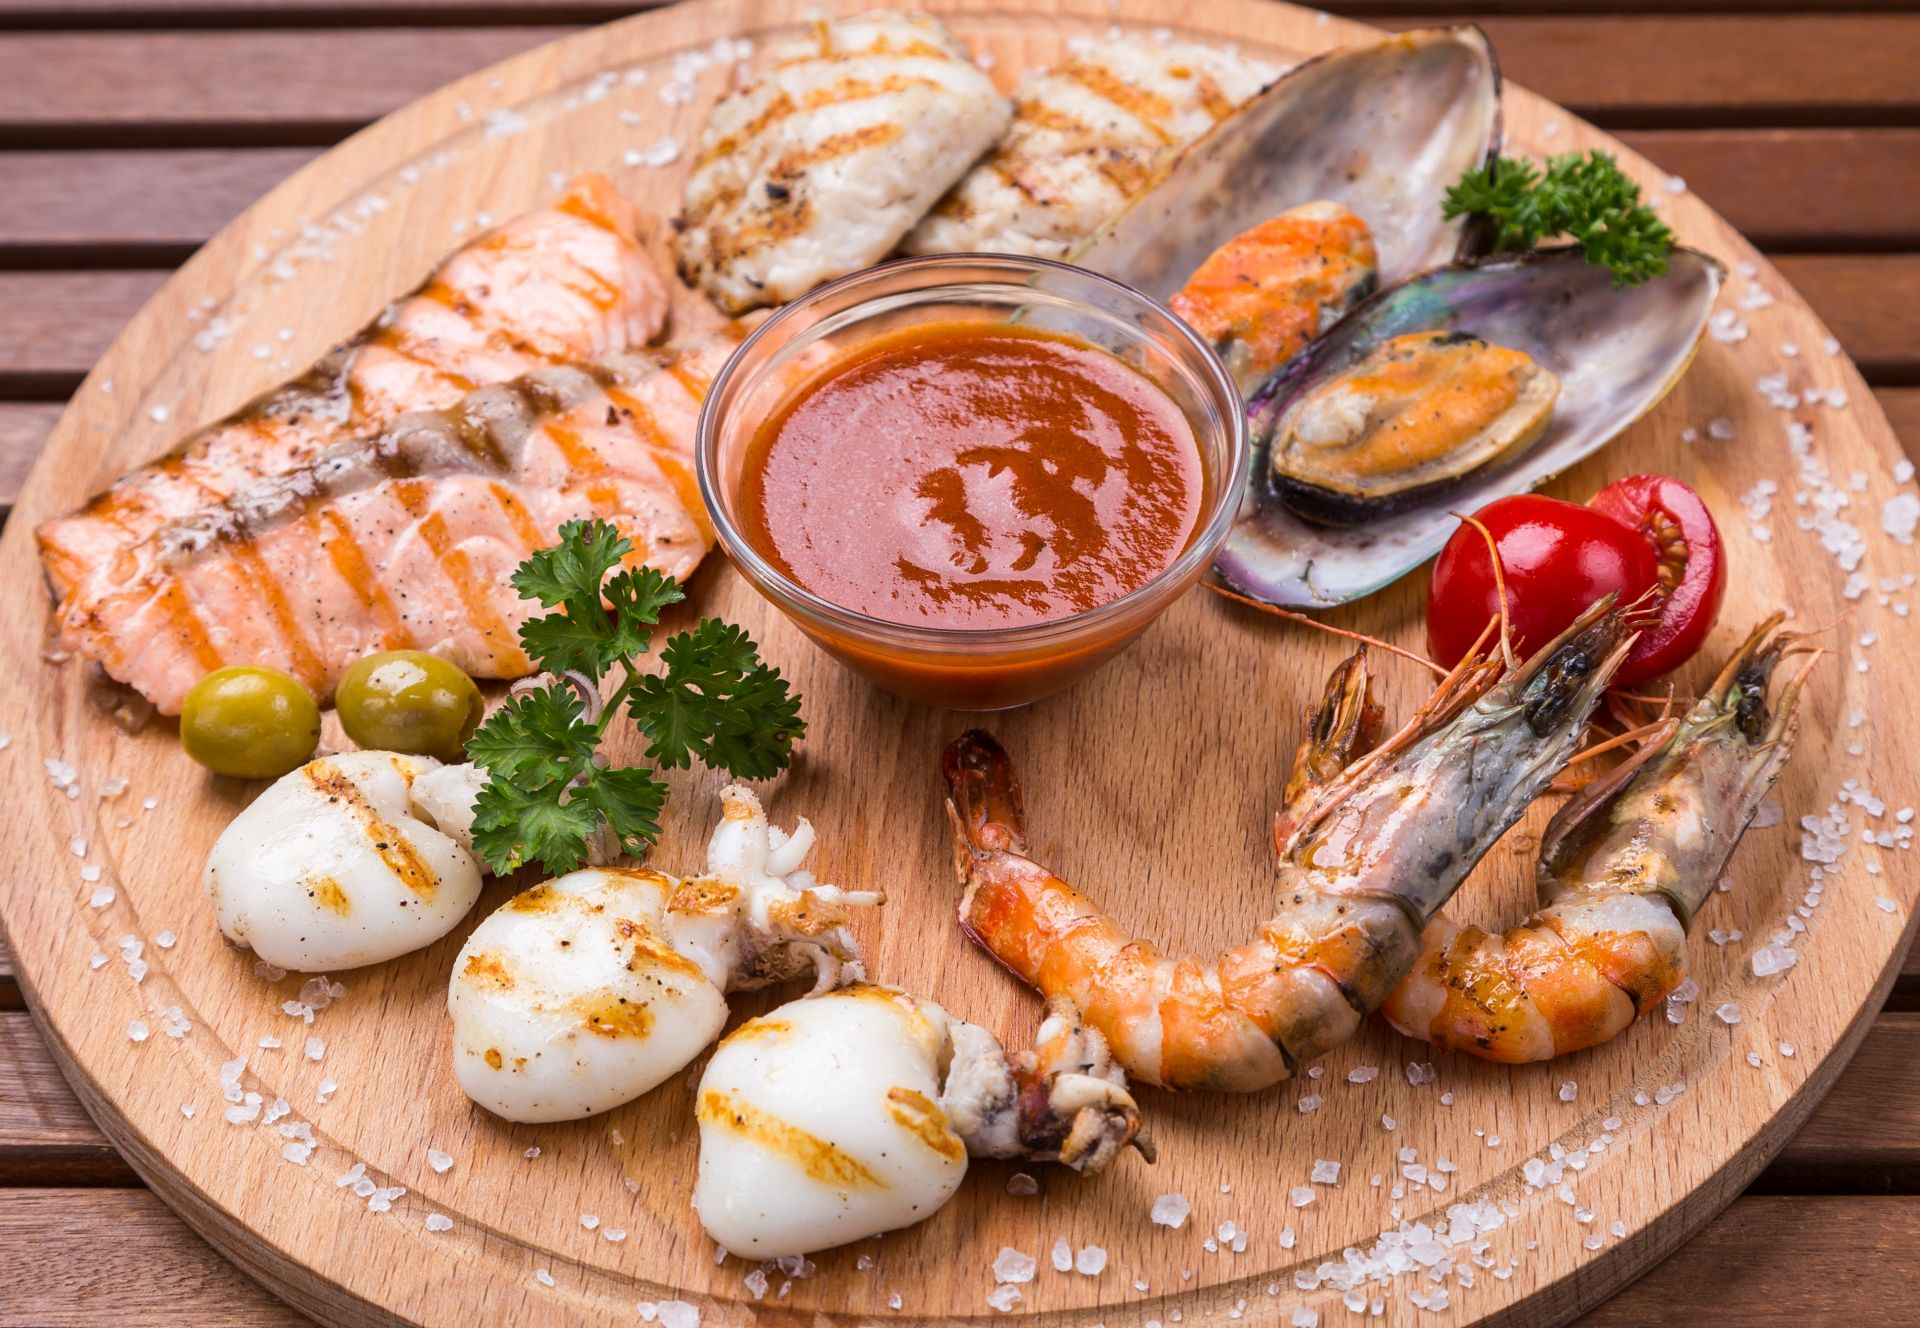 Mix of seafood